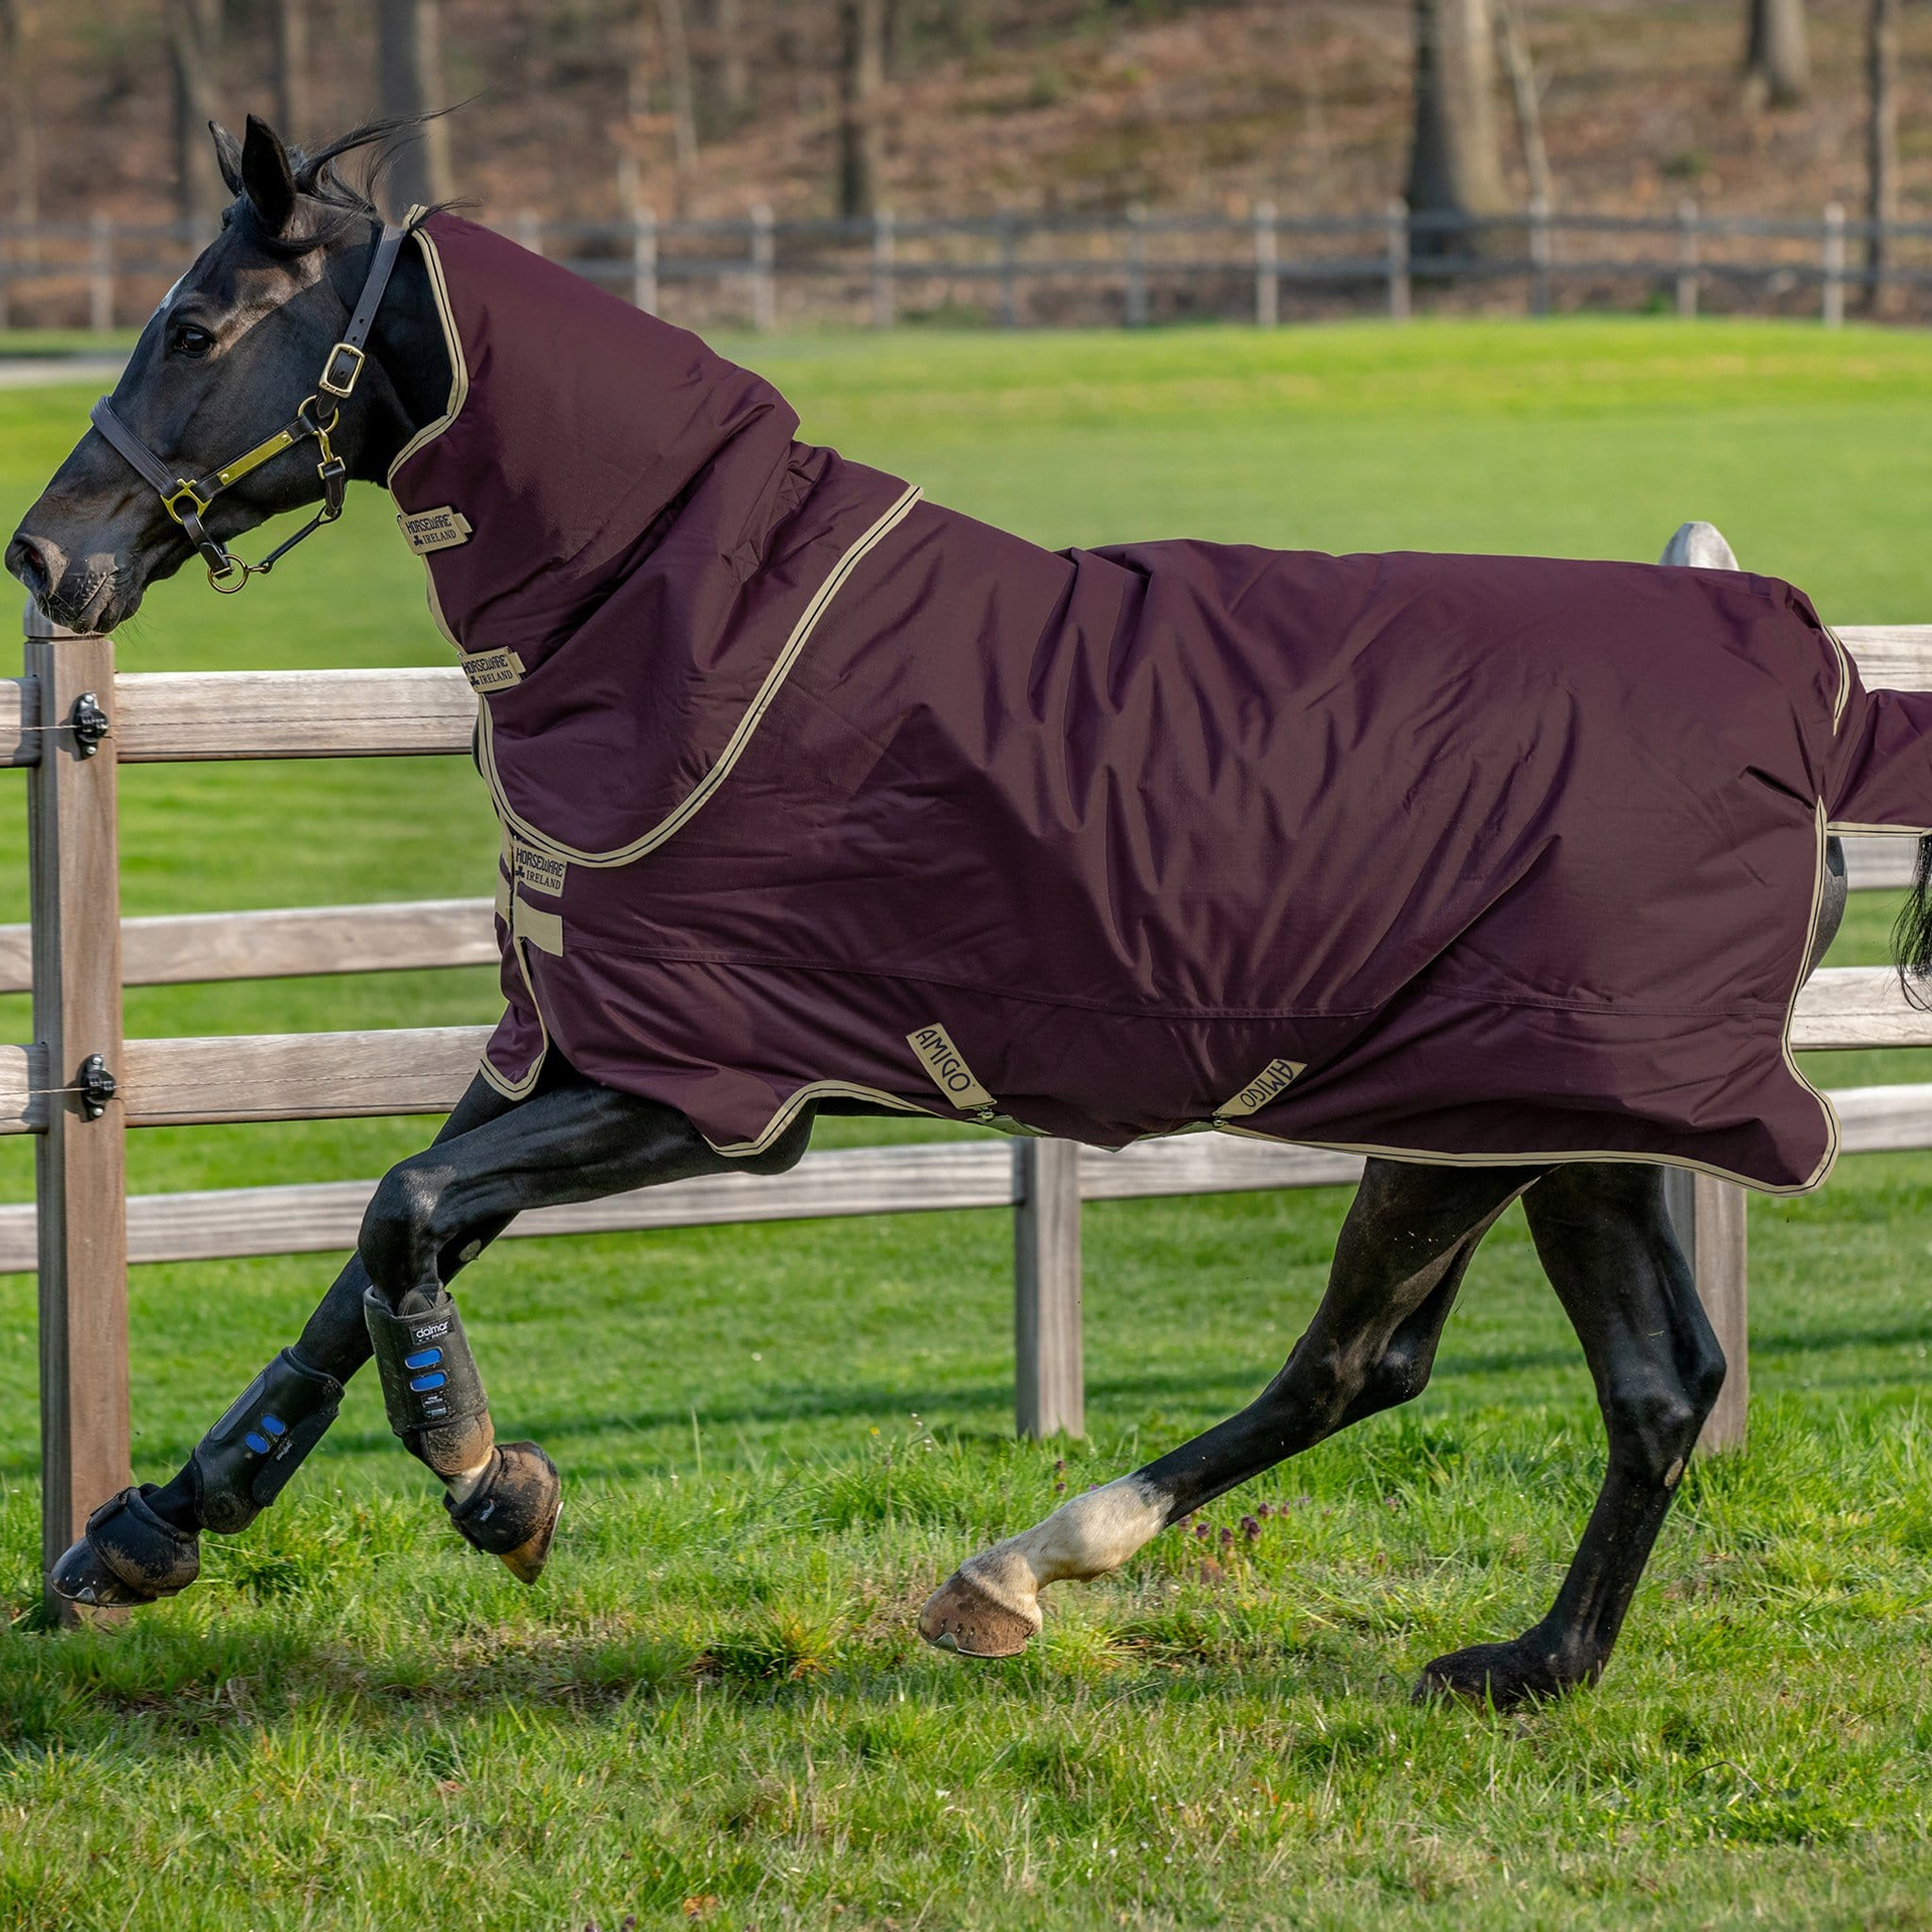 Amigo Hero Ripstop Plus Lightweight 0g Detachable Neck Turnout Rug Fig Navy and Tan AAPP90